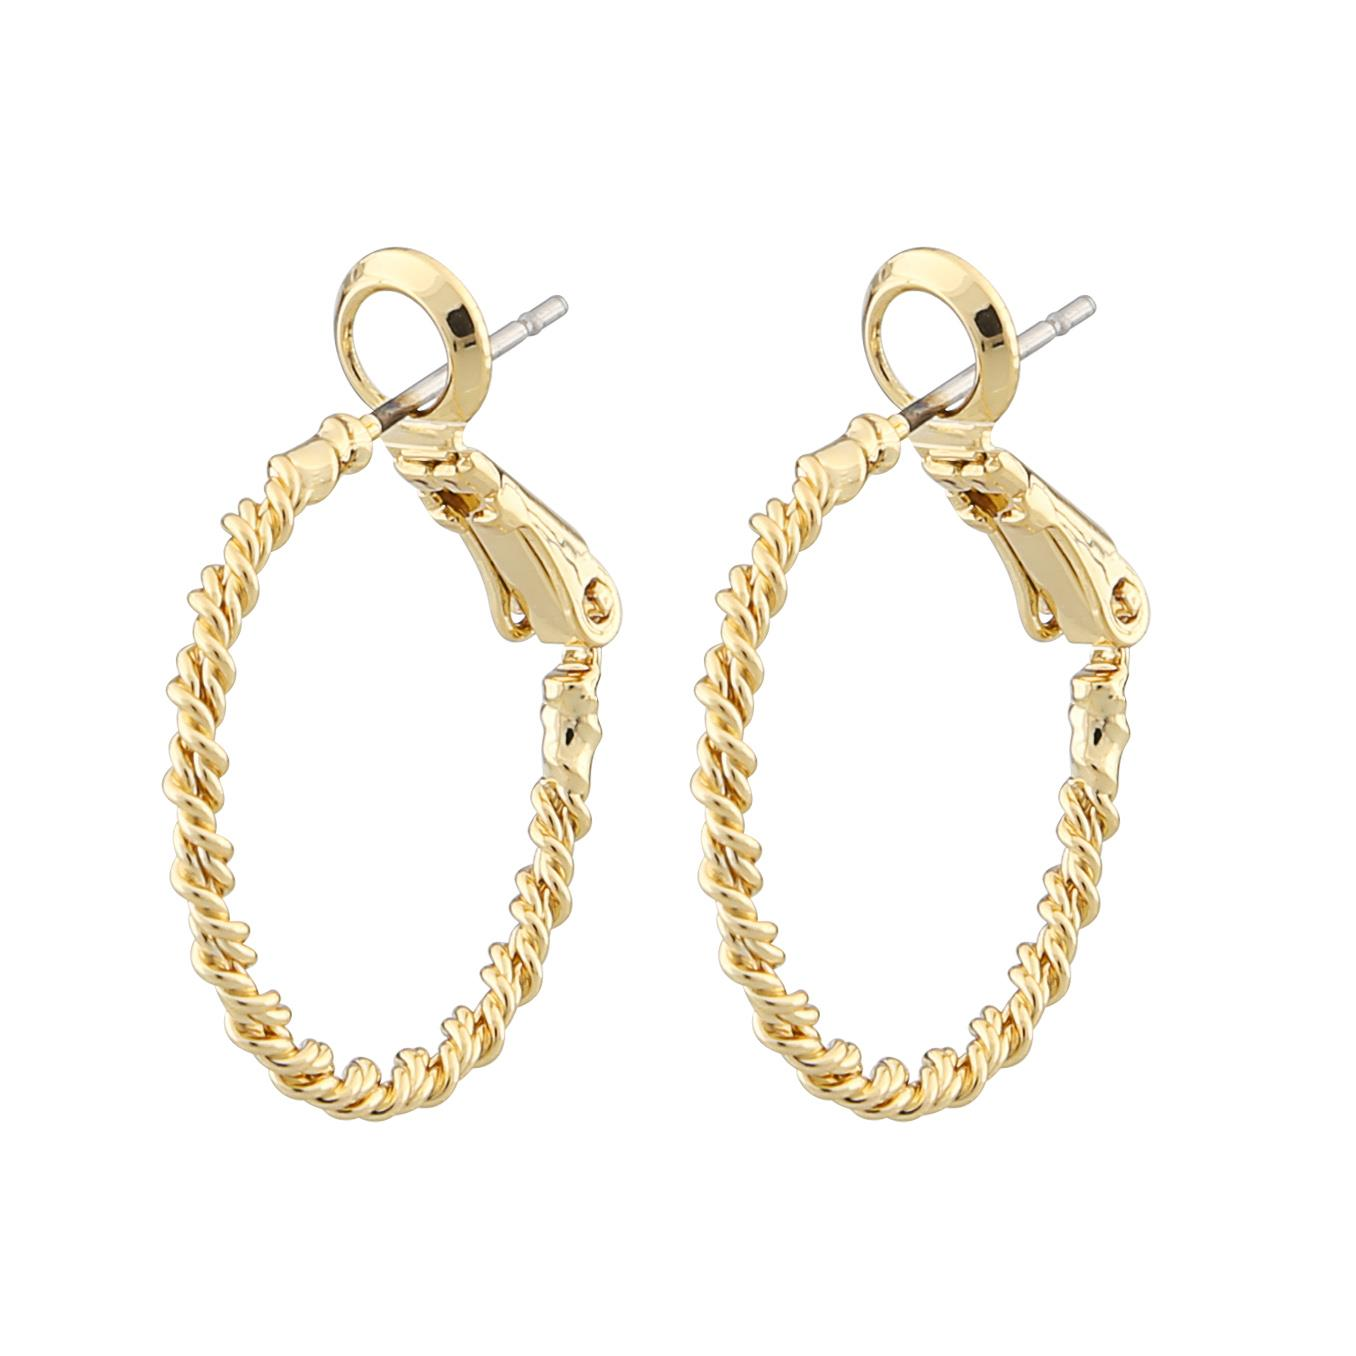 Madeleine Ring Earring gold